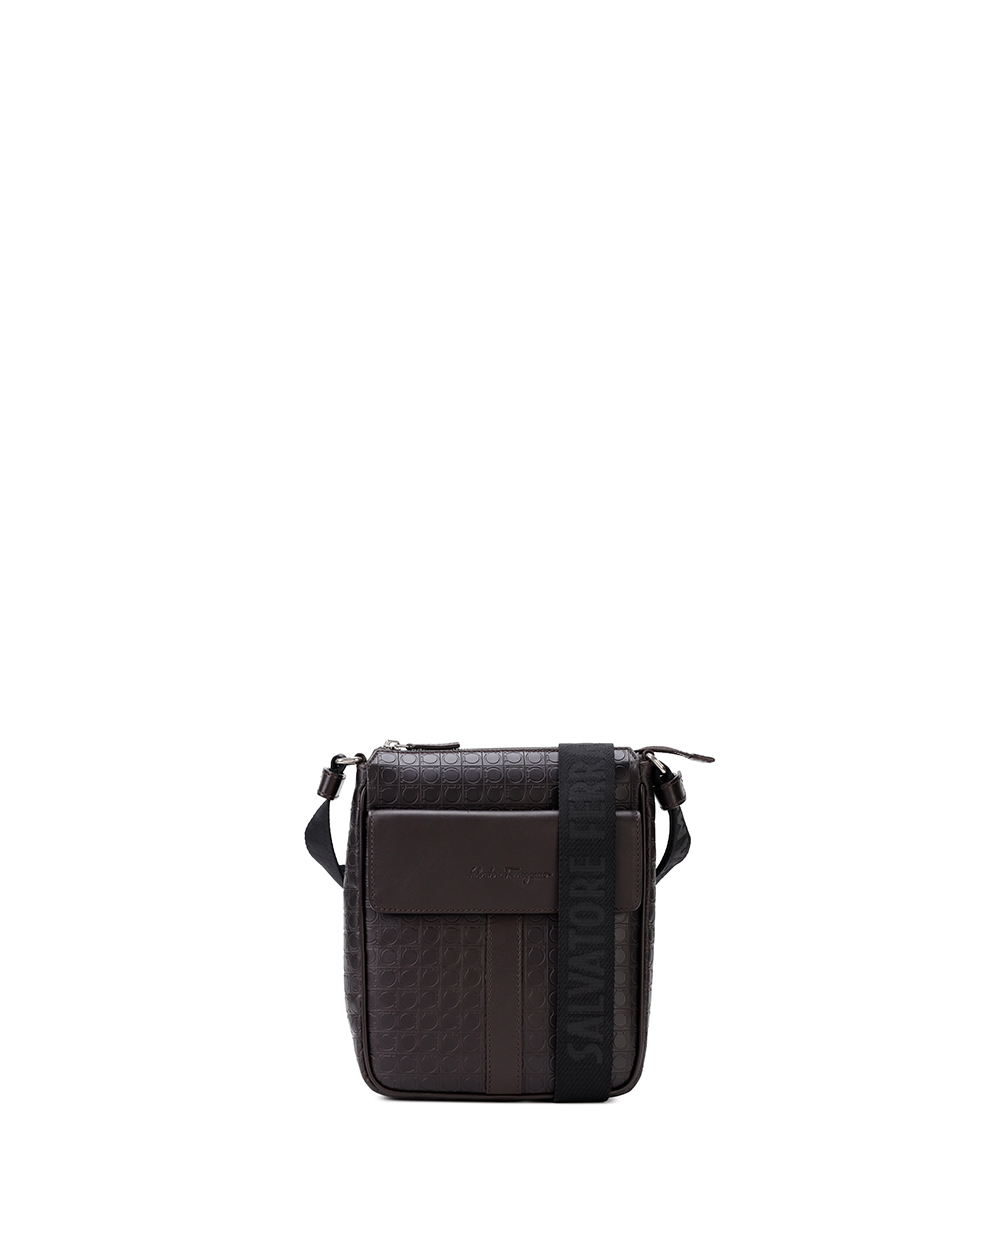 Men's Shoulder Crossbody Bag